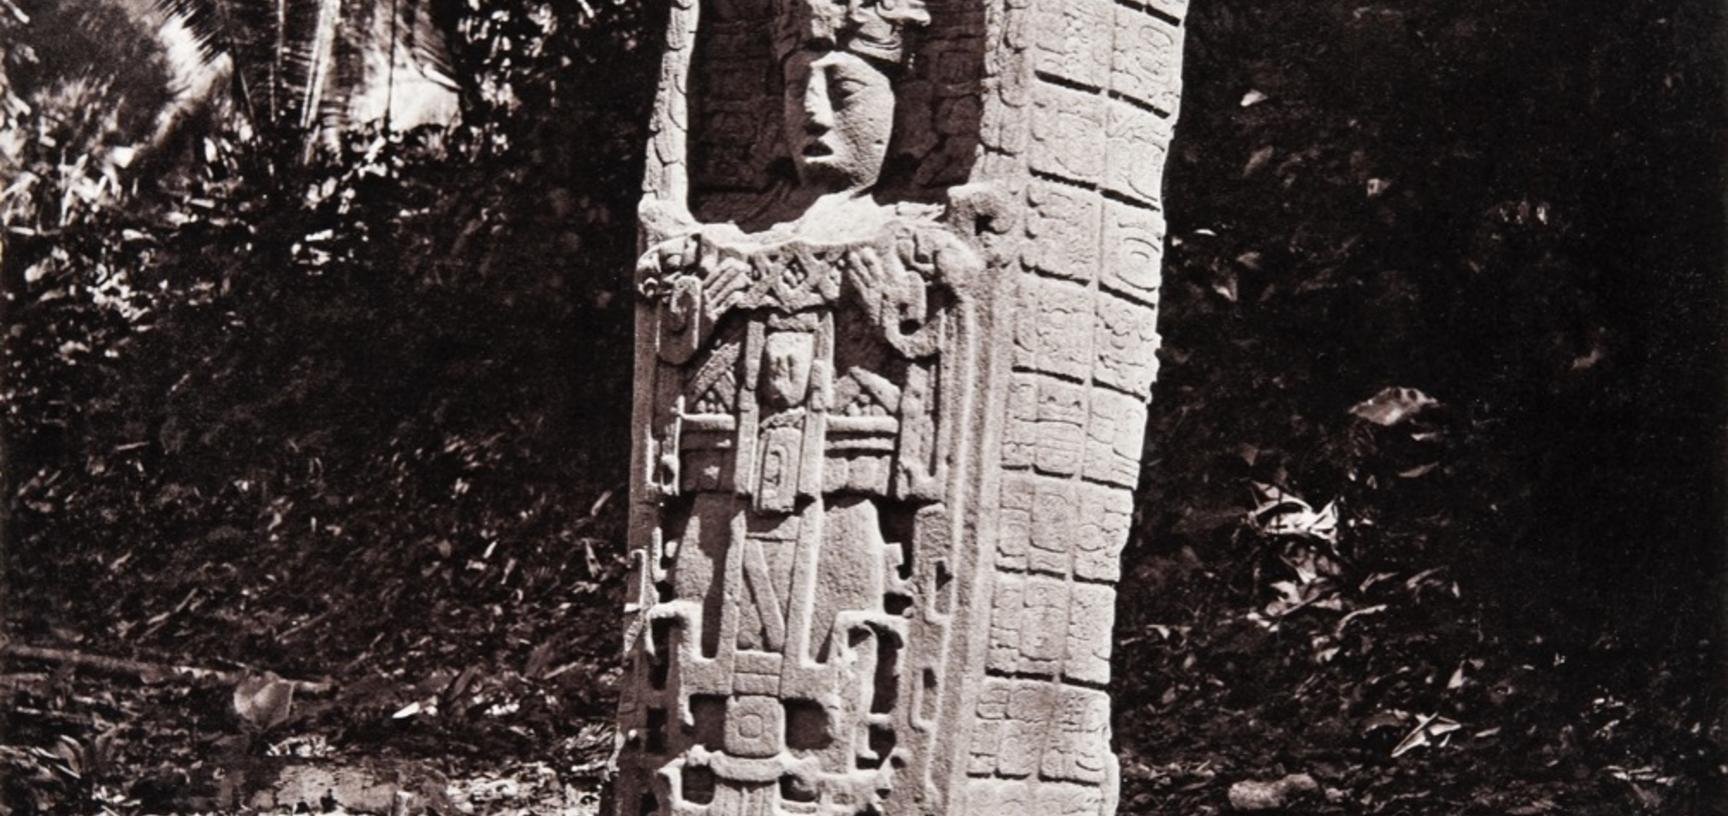 Stela C (also known as Monument 3), dated AD 775. The south face of this monument depicts the ruler K'ak' Tiliw Chan Yopaat wearing a costume which includes elements associated in Maya iconography with warfare, a reference to the leader's military prowess